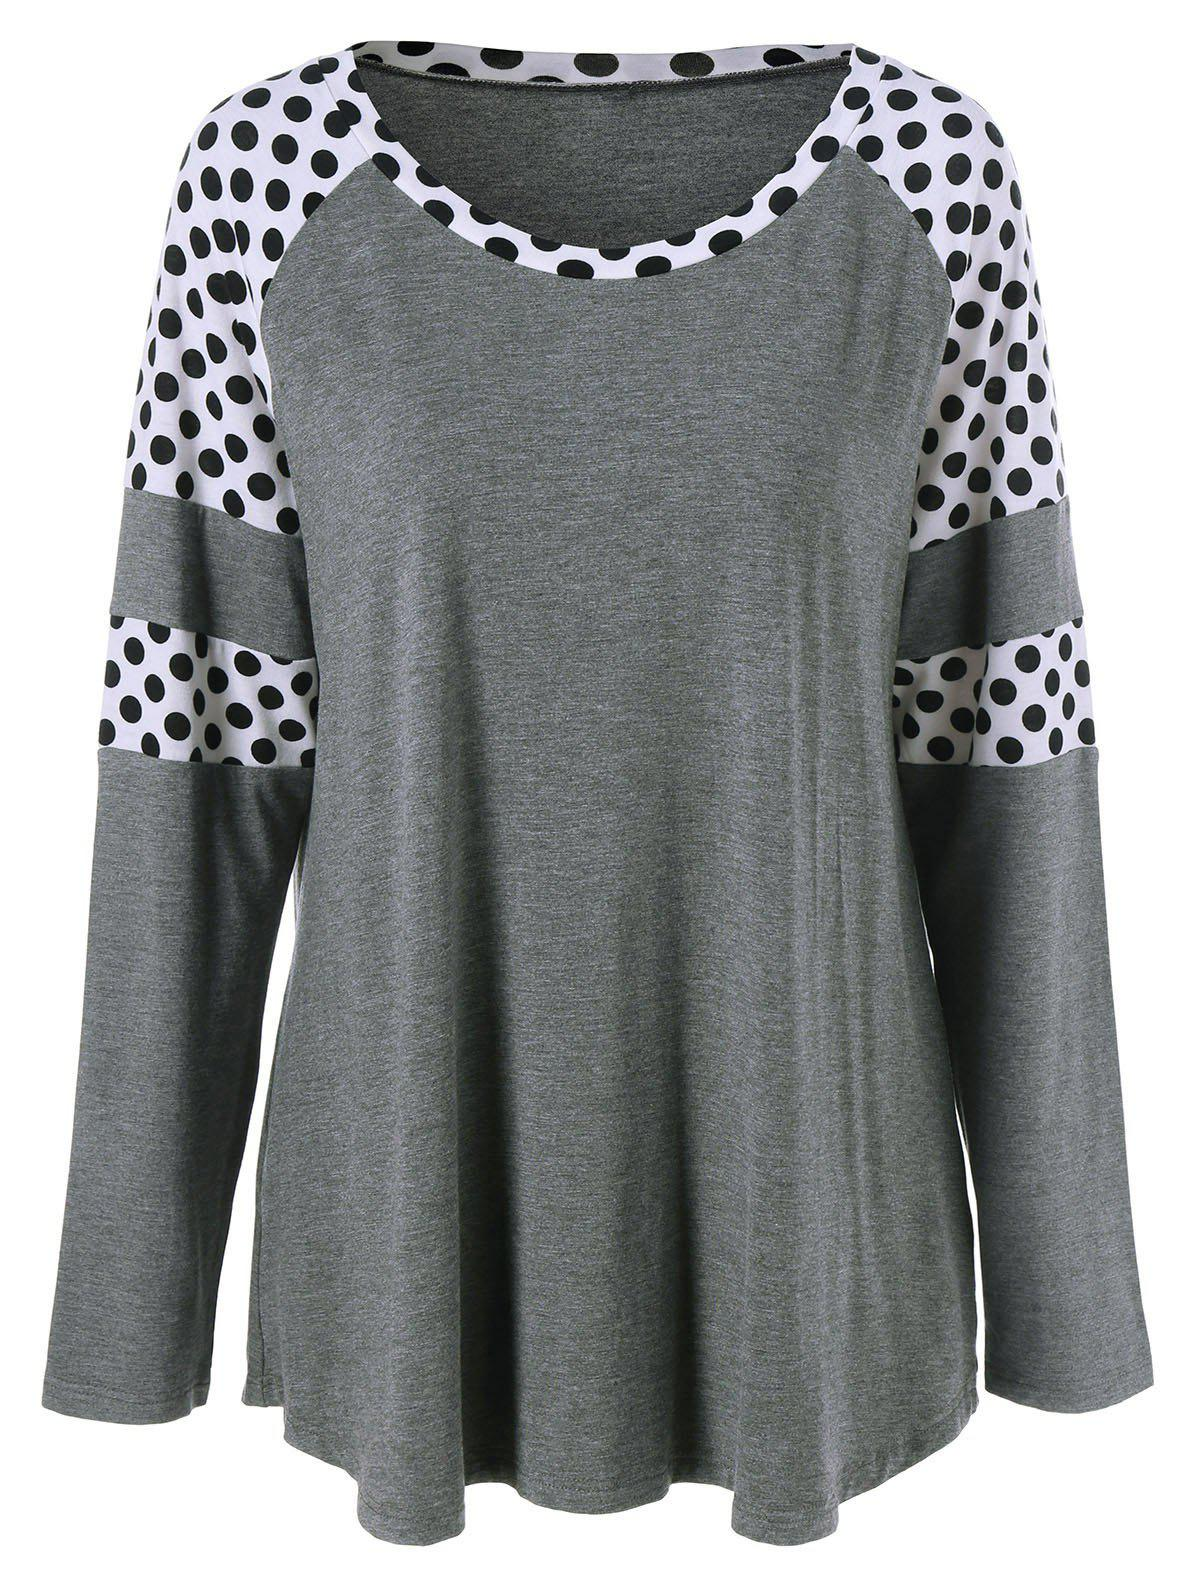 Plus Size Polka Dot Insert TeeWOMEN<br><br>Size: XL; Color: GREY AND WHITE; Material: Rayon,Spandex; Shirt Length: Regular; Sleeve Length: Full; Collar: Scoop Neck; Style: Casual; Season: Fall,Spring; Pattern Type: Polka Dot; Weight: 0.400kg; Package Contents: 1 x T-Shirt;